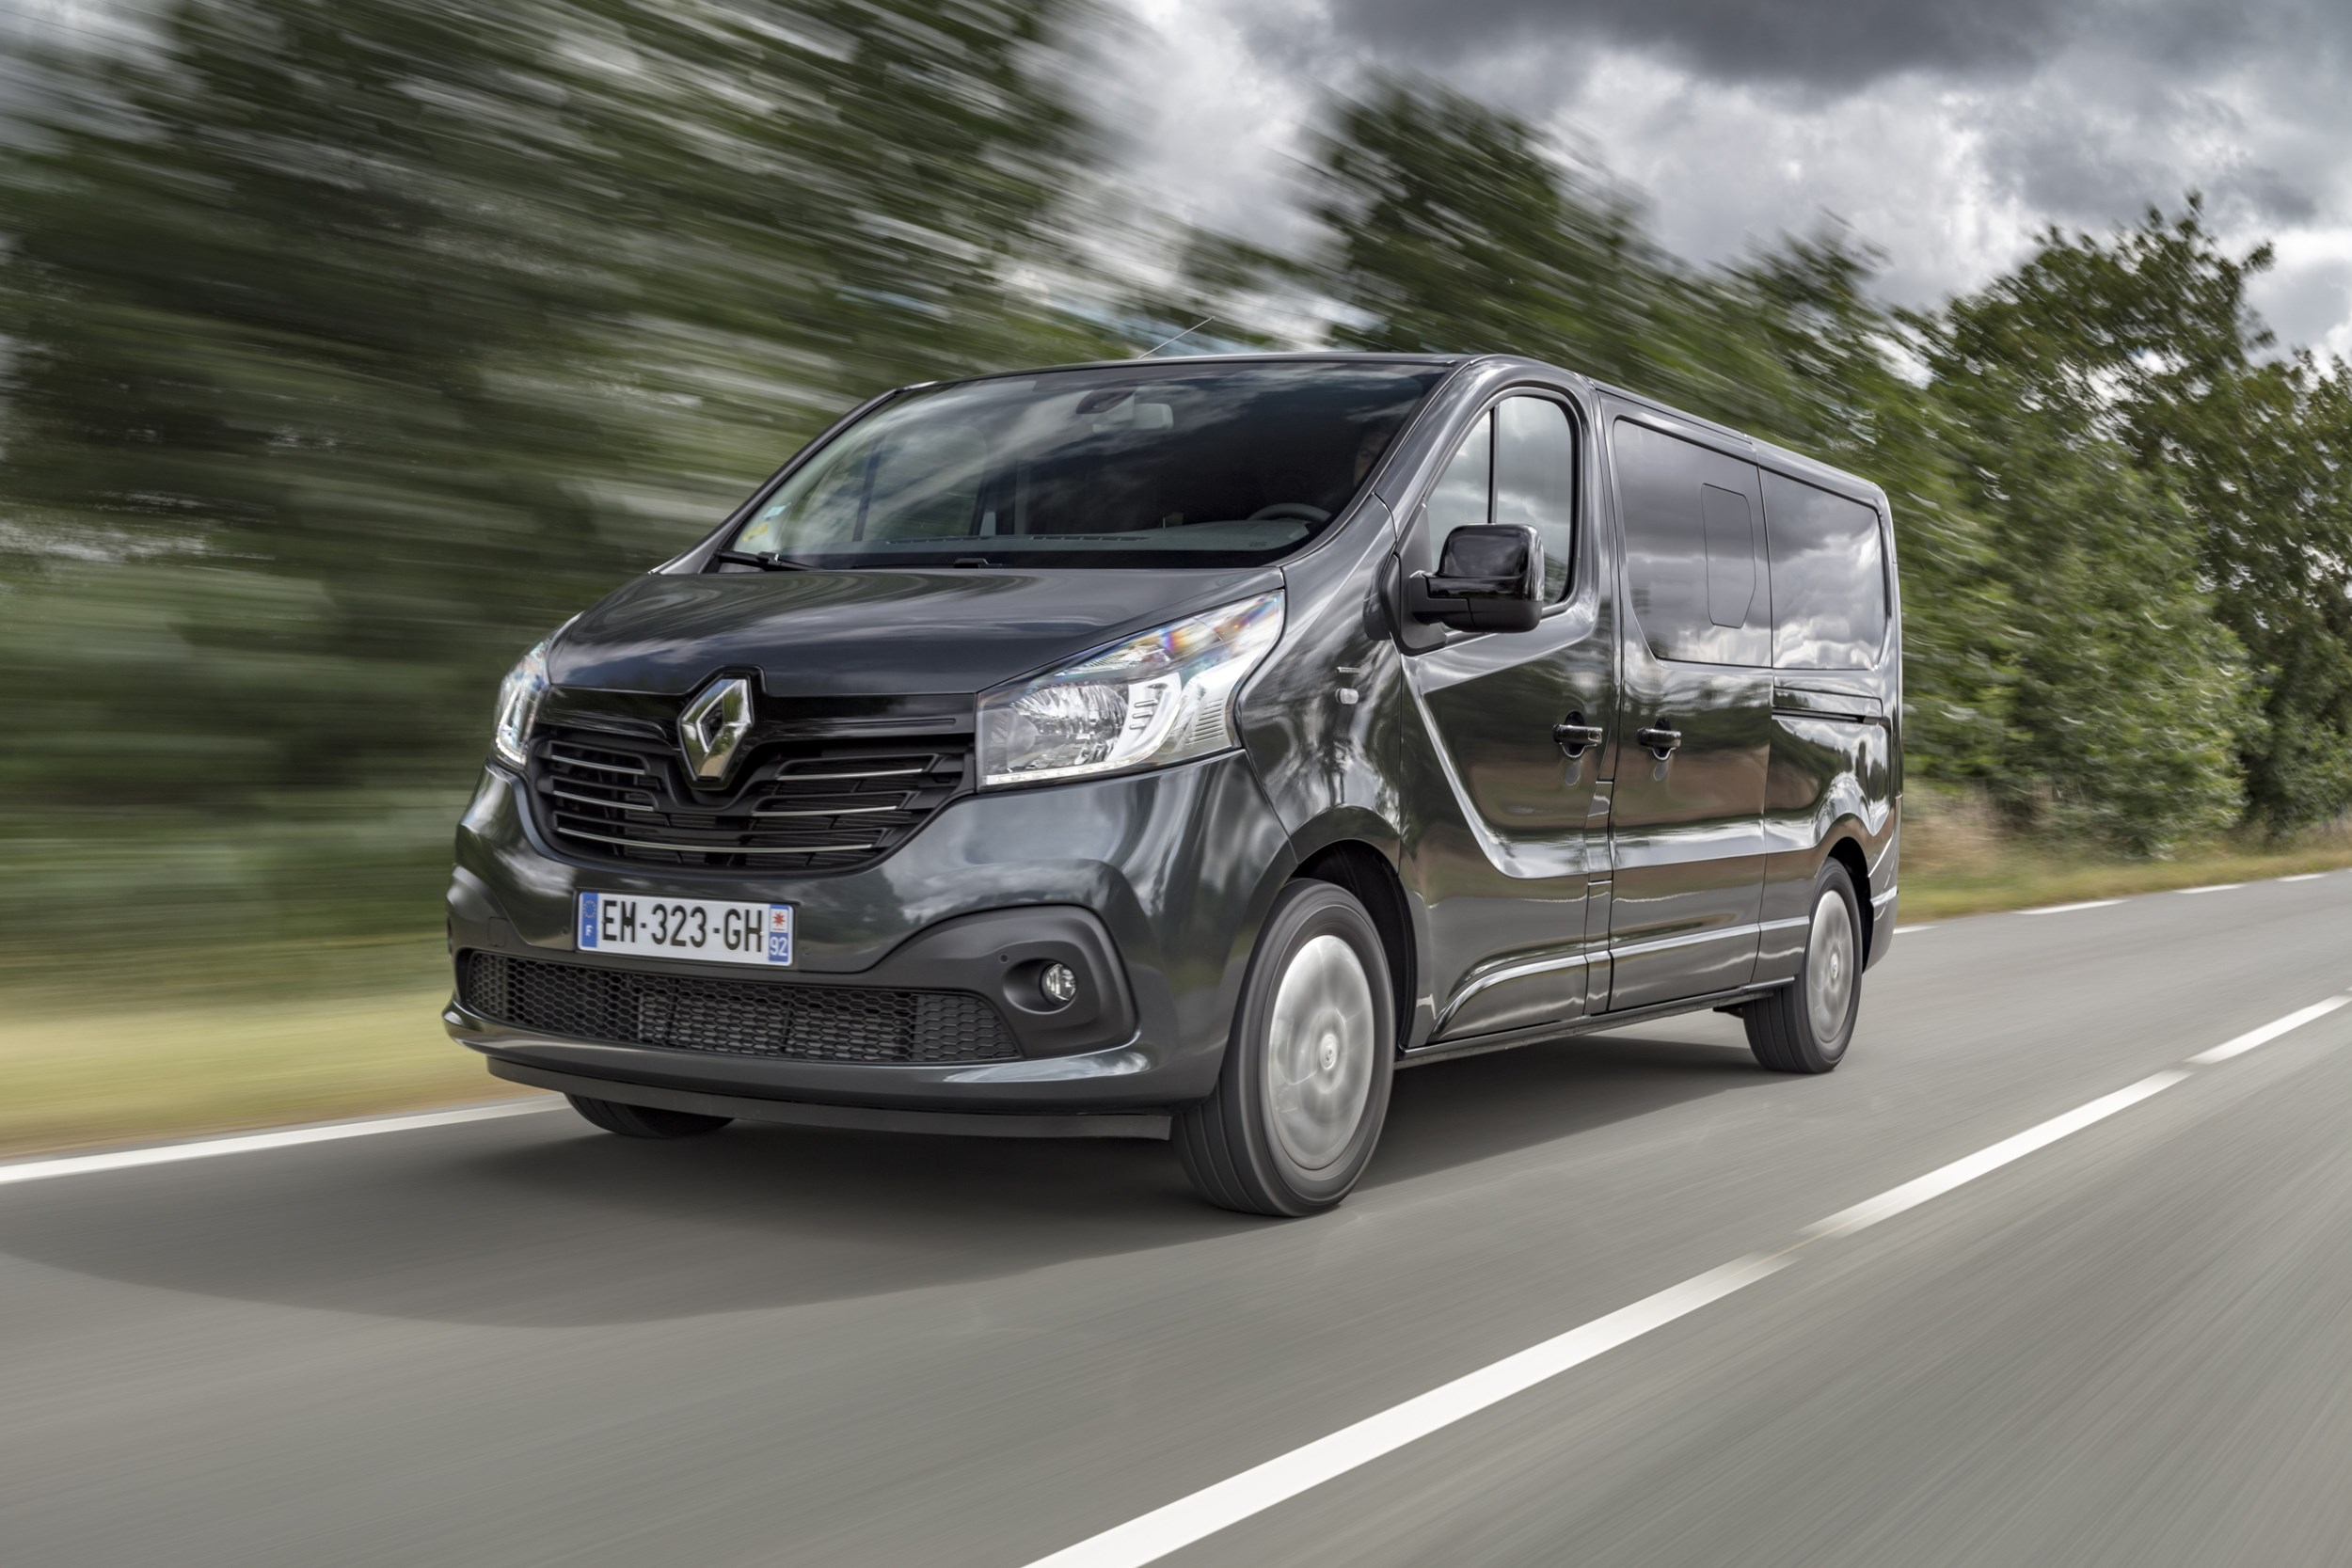 renault targets passenger transport market with trafic. Black Bedroom Furniture Sets. Home Design Ideas